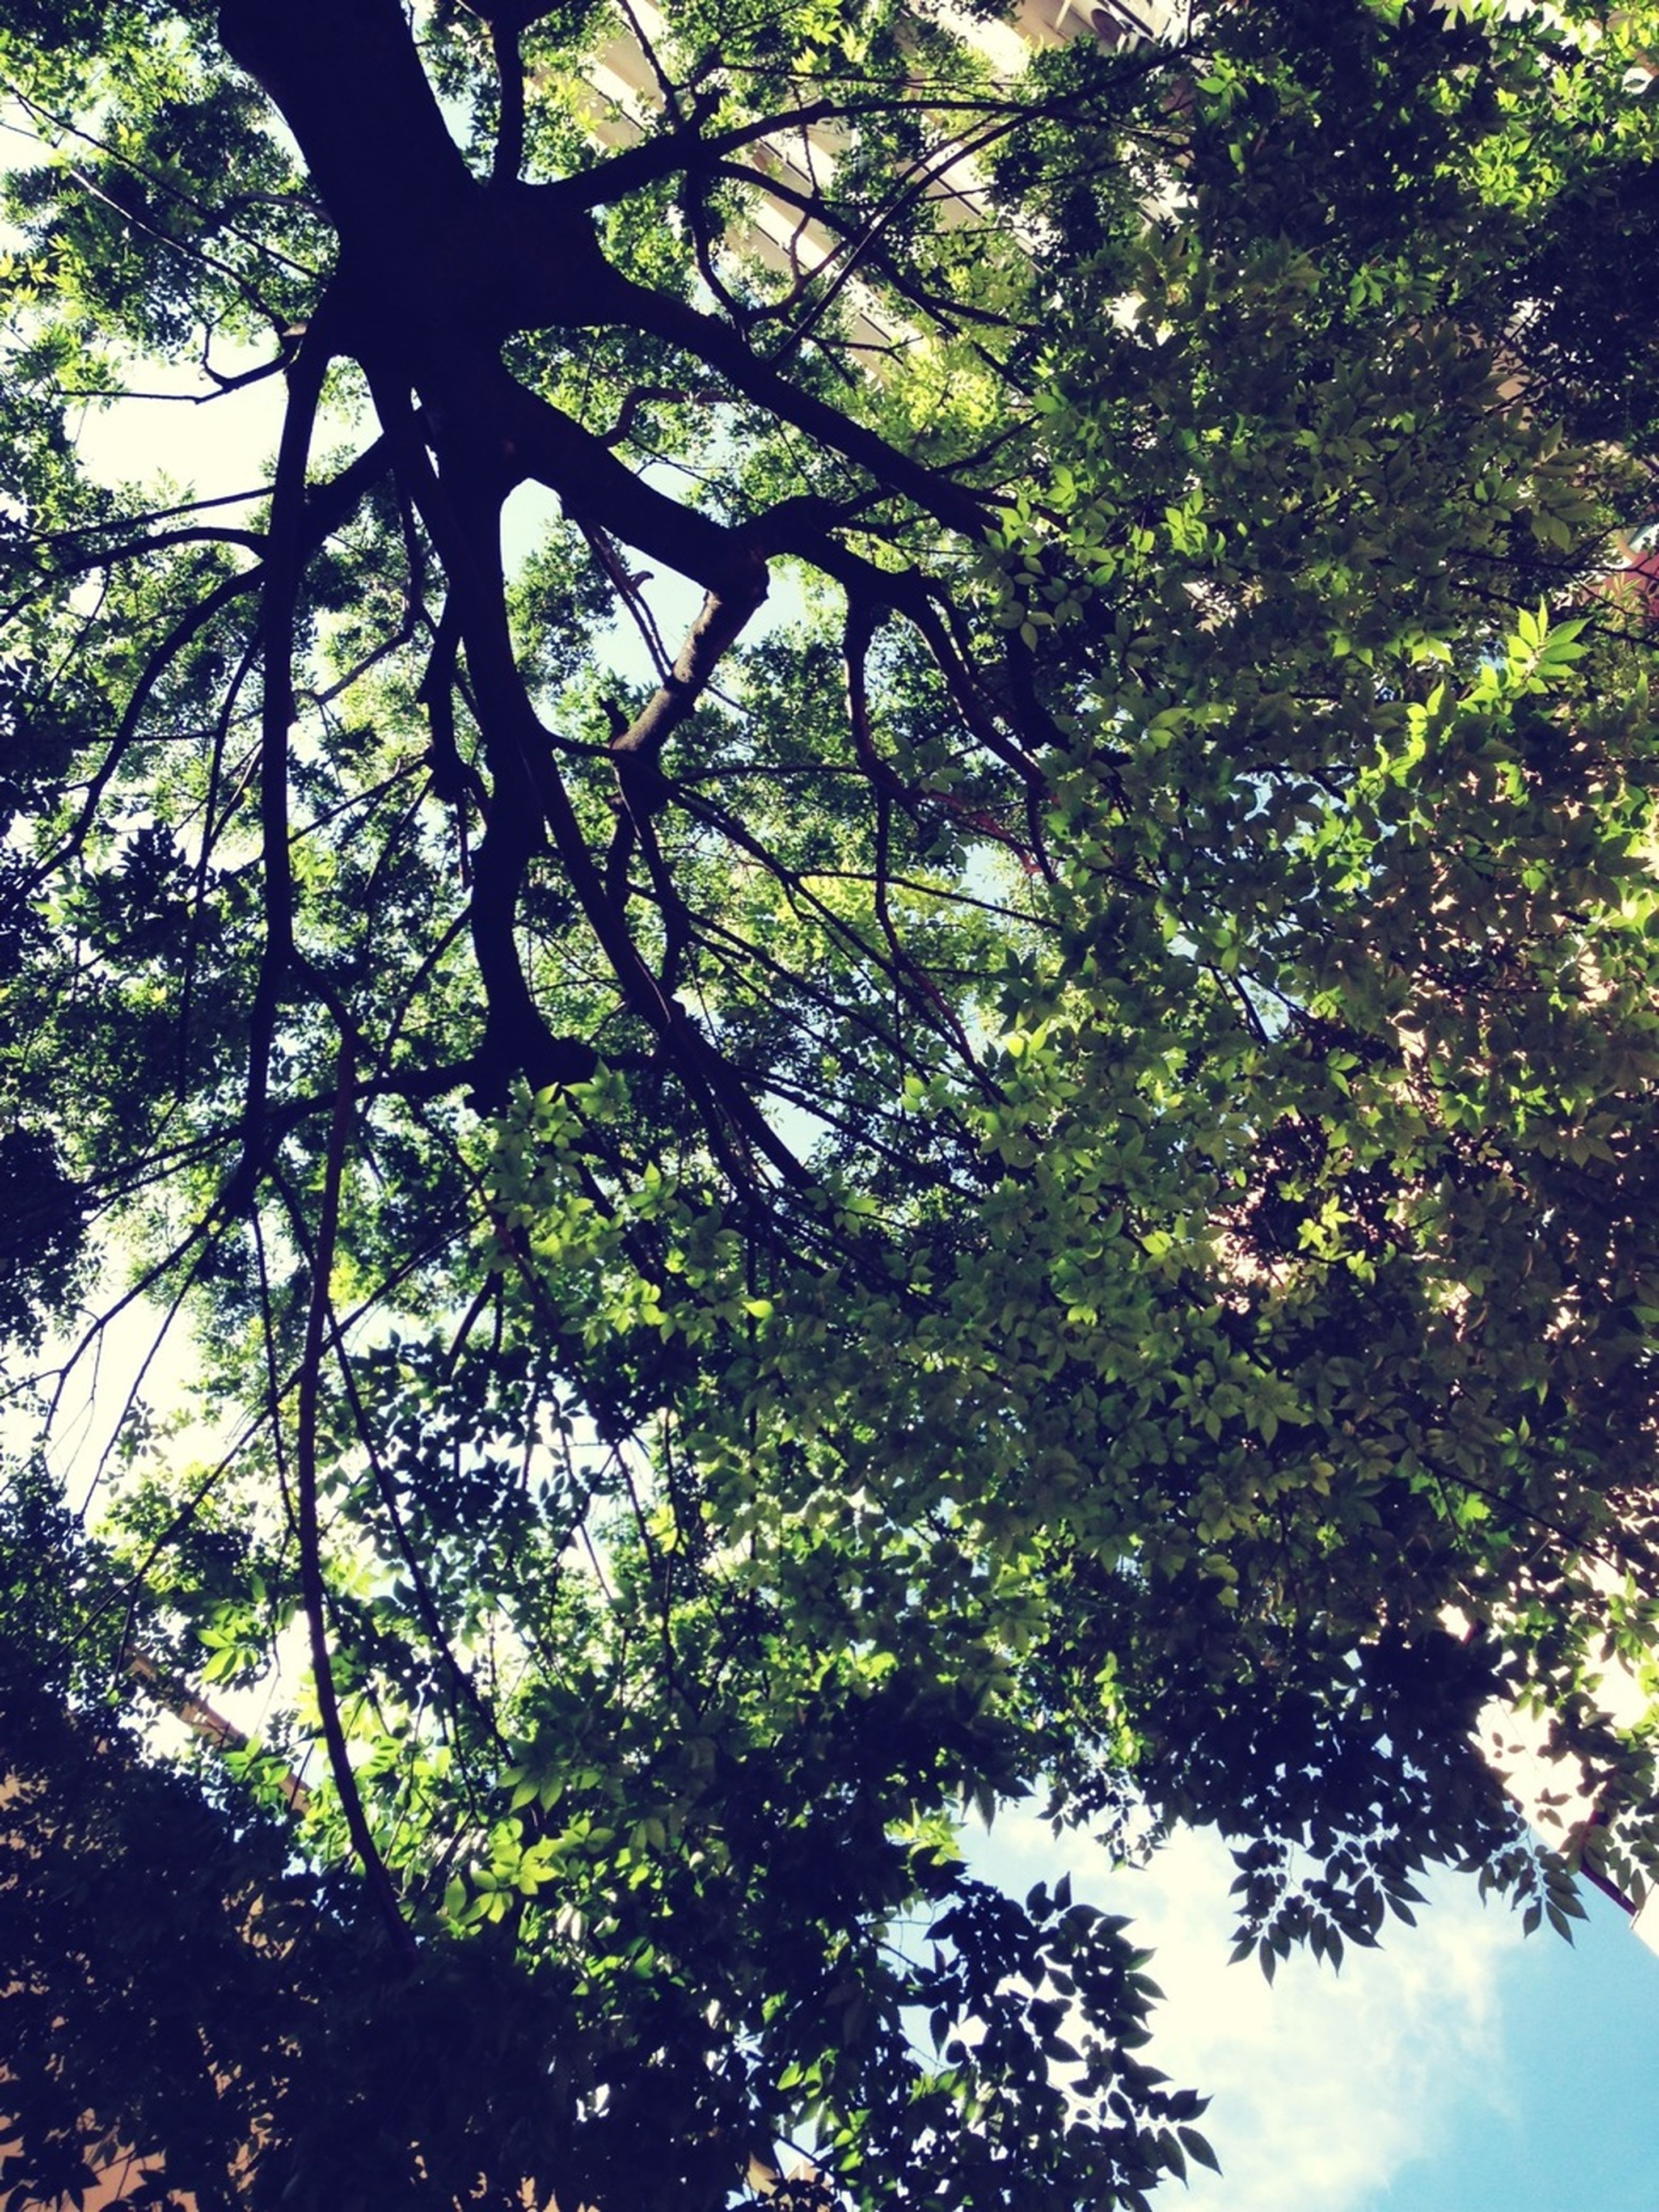 tree, low angle view, branch, growth, tranquility, nature, green color, beauty in nature, leaf, sky, tree trunk, day, no people, outdoors, forest, scenics, lush foliage, tranquil scene, sunlight, green